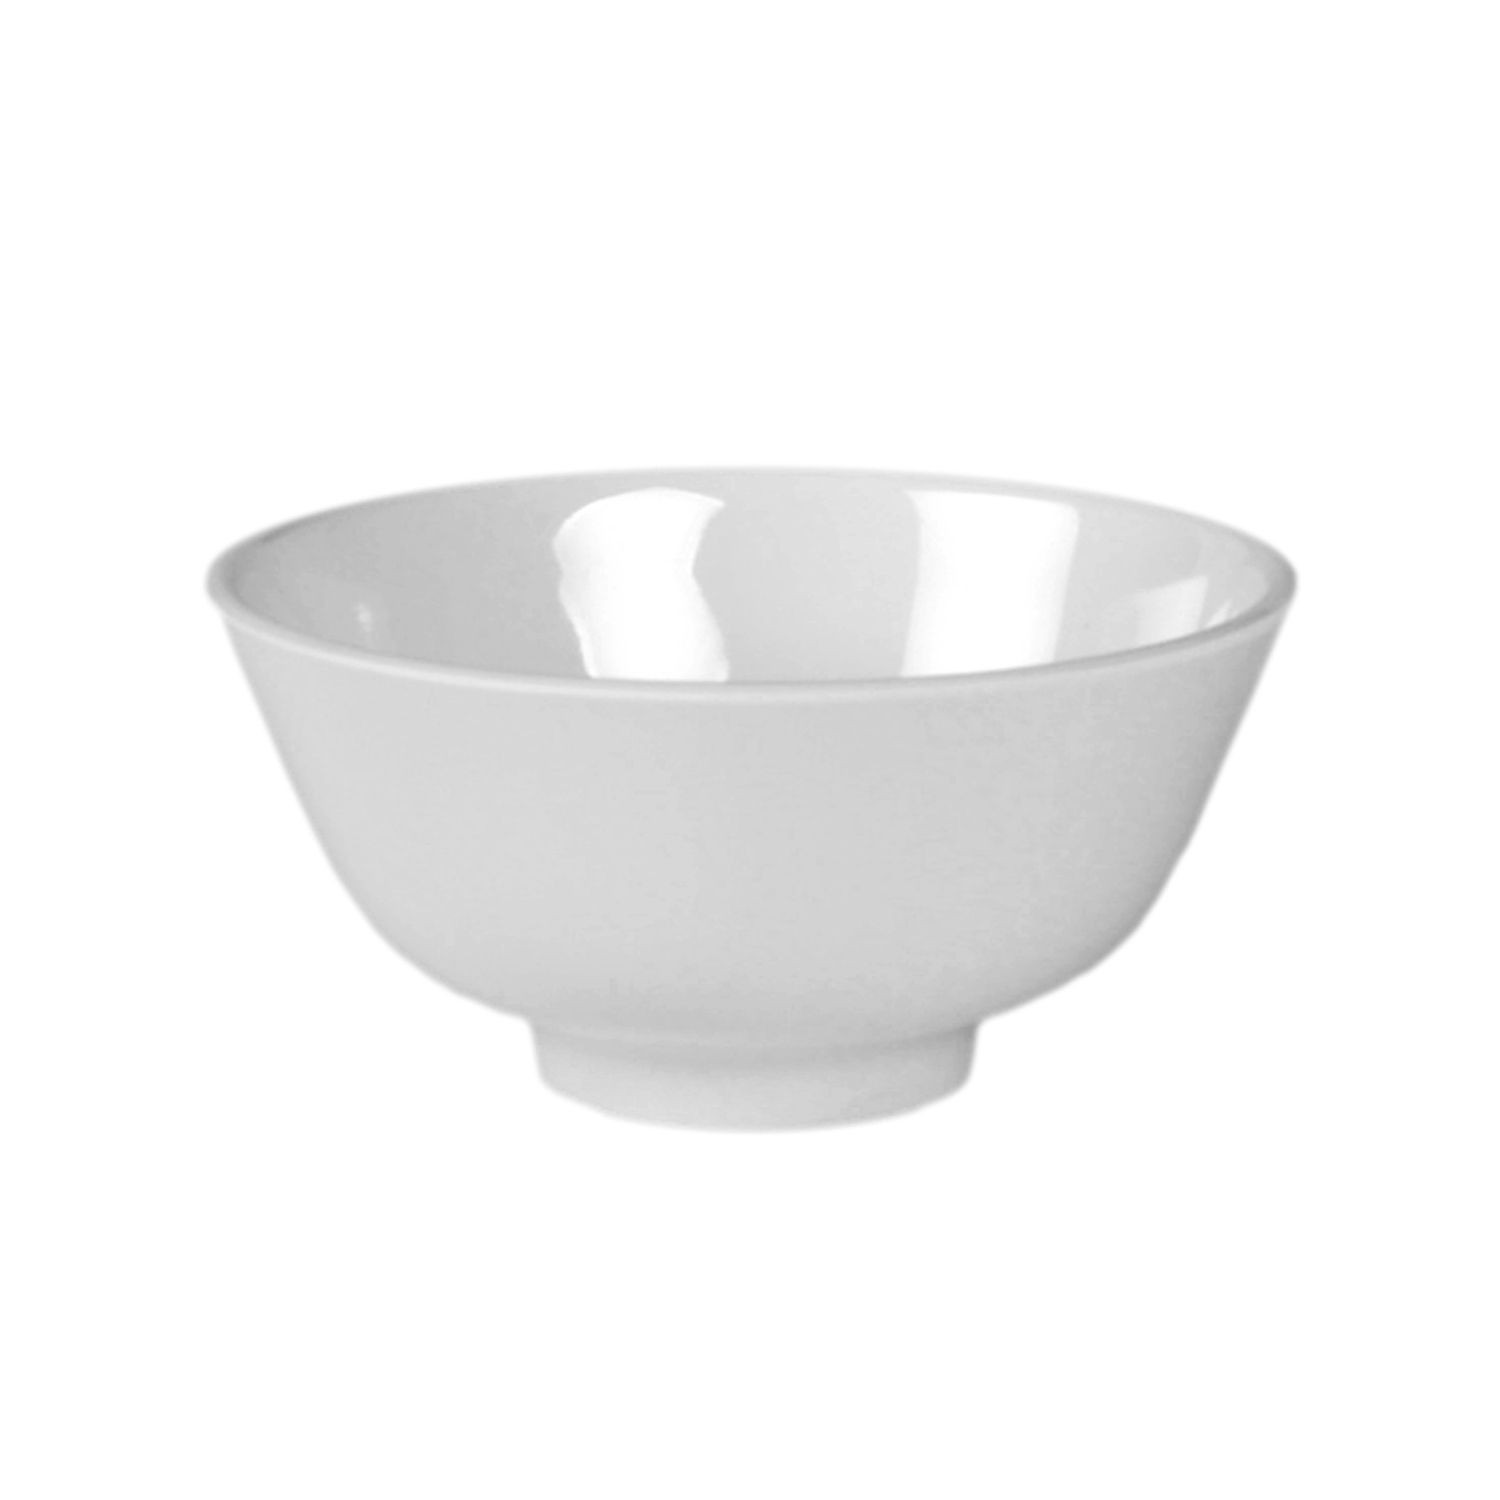 Thunder Group 3004TW Imperial Melamine Rice Bowl, 12 oz., 4-7/8